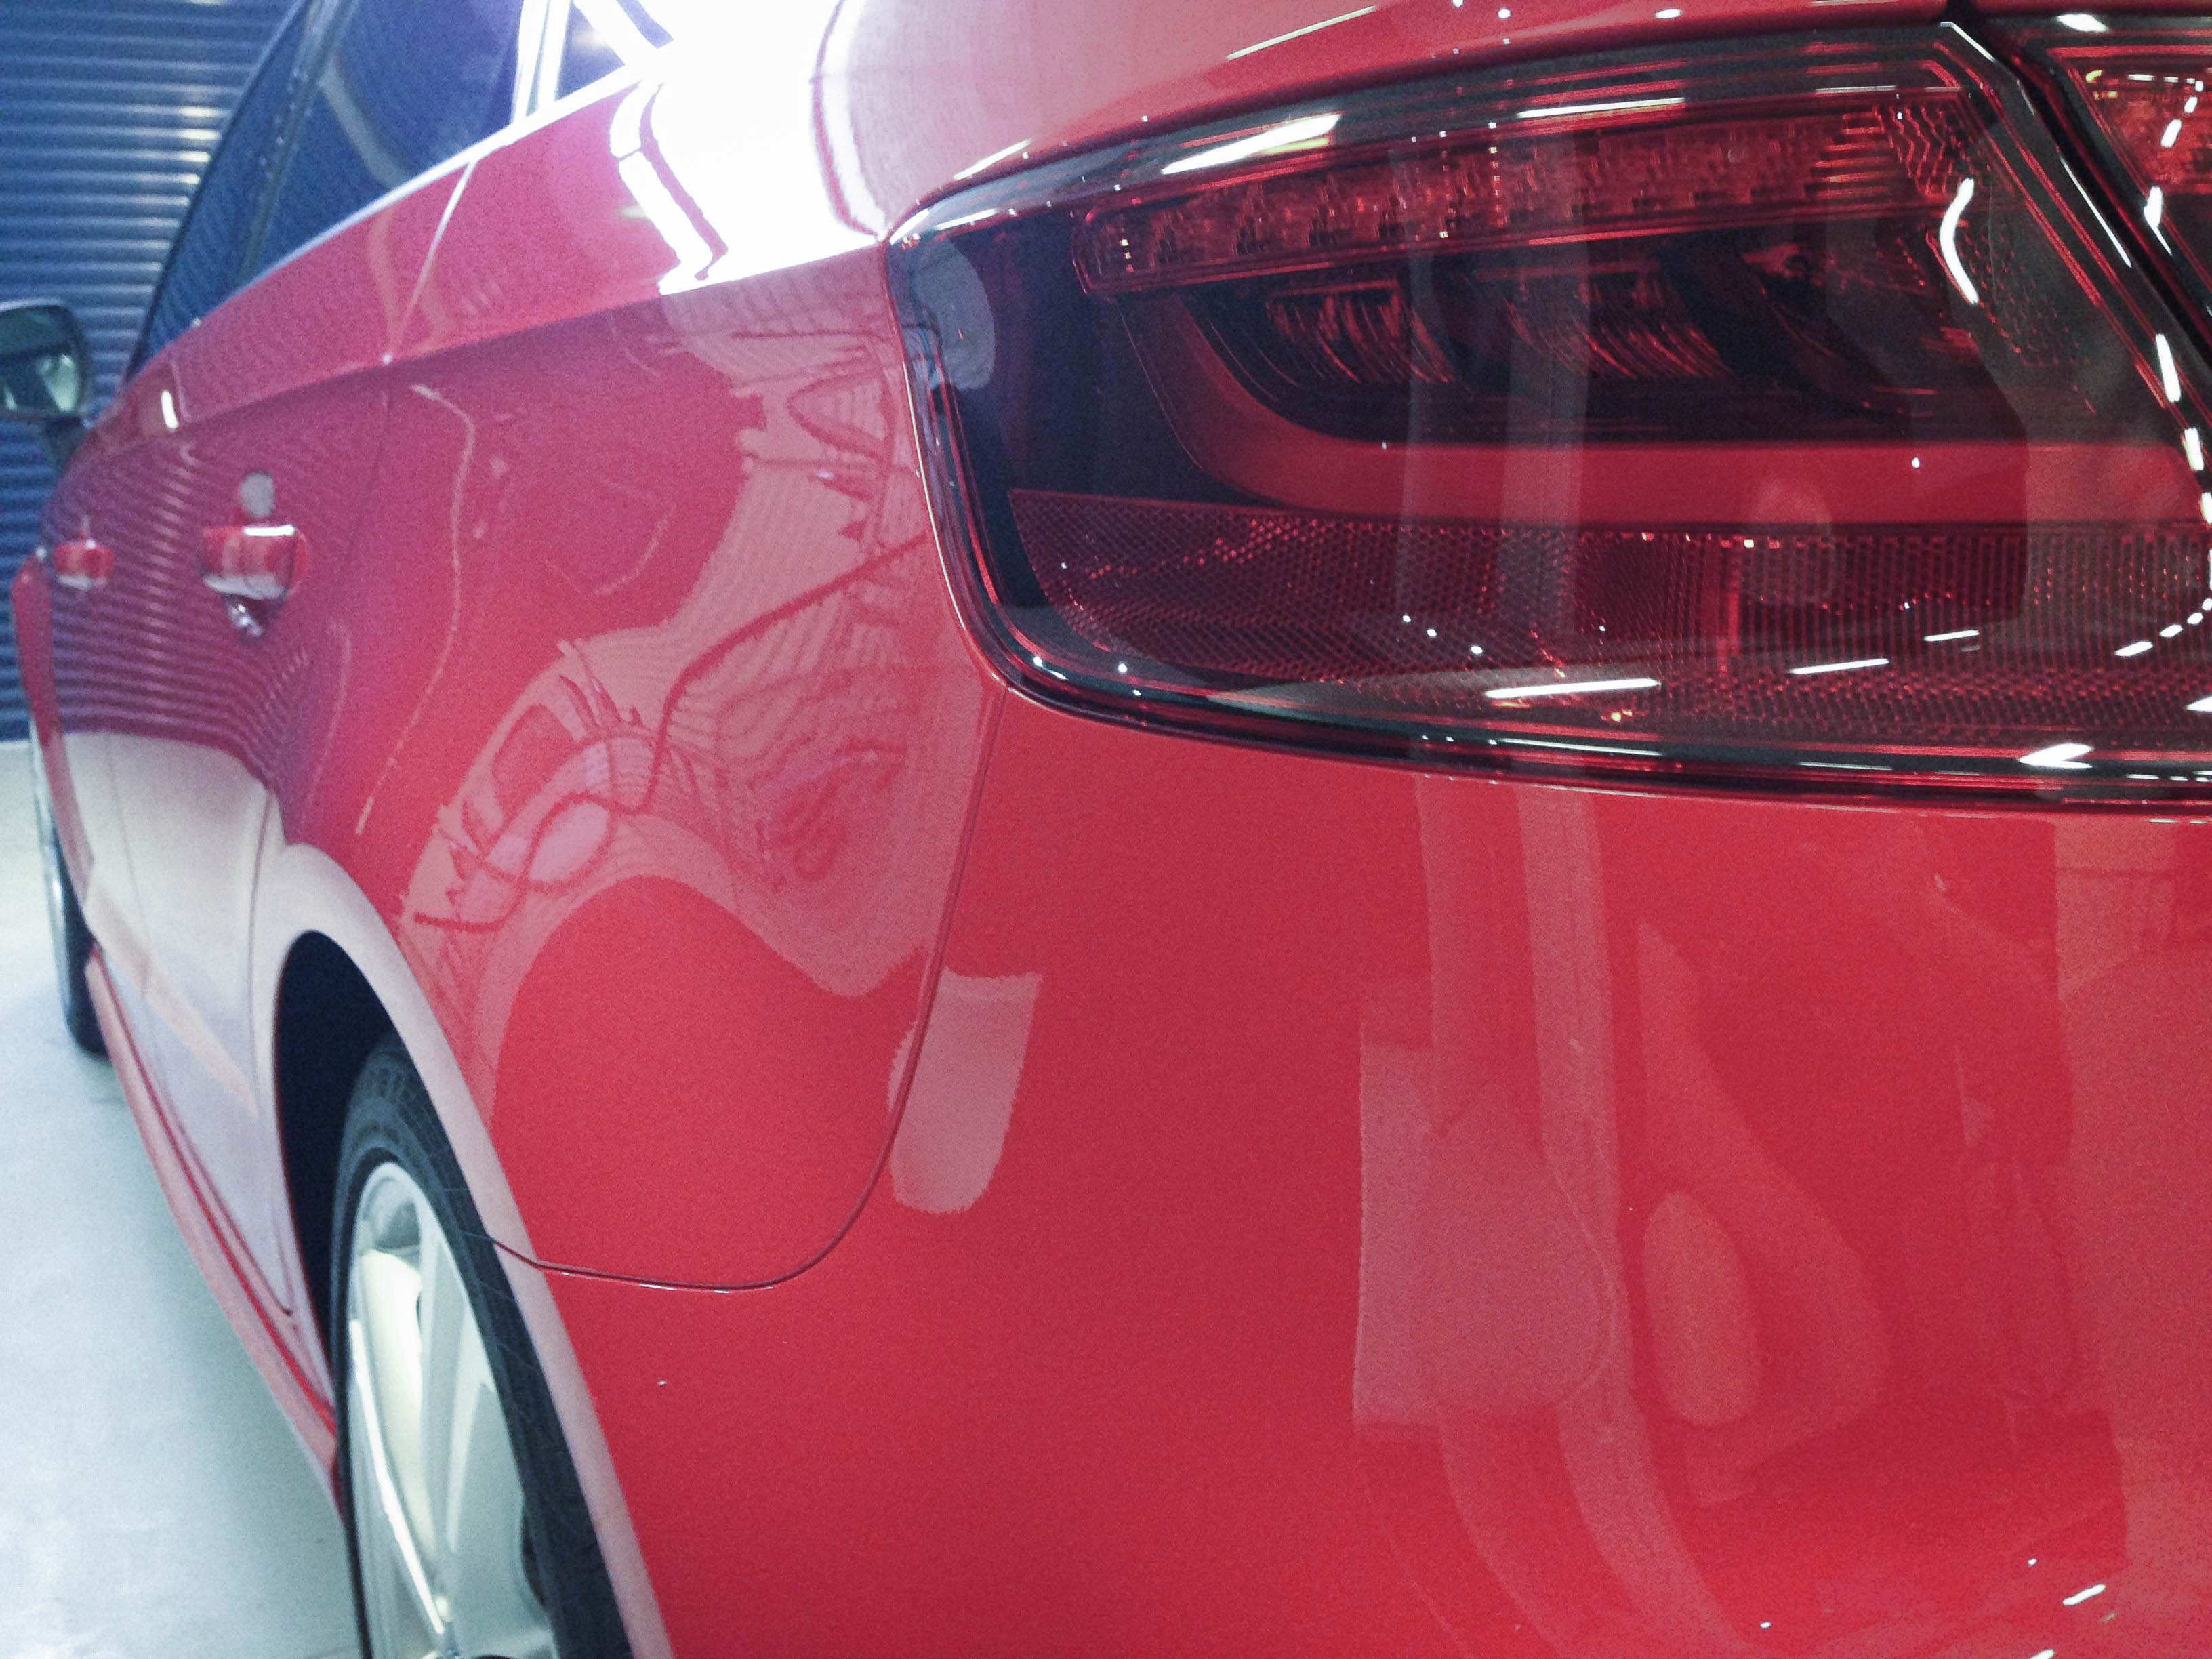 Audi A3 (Misano Red) – Rear light